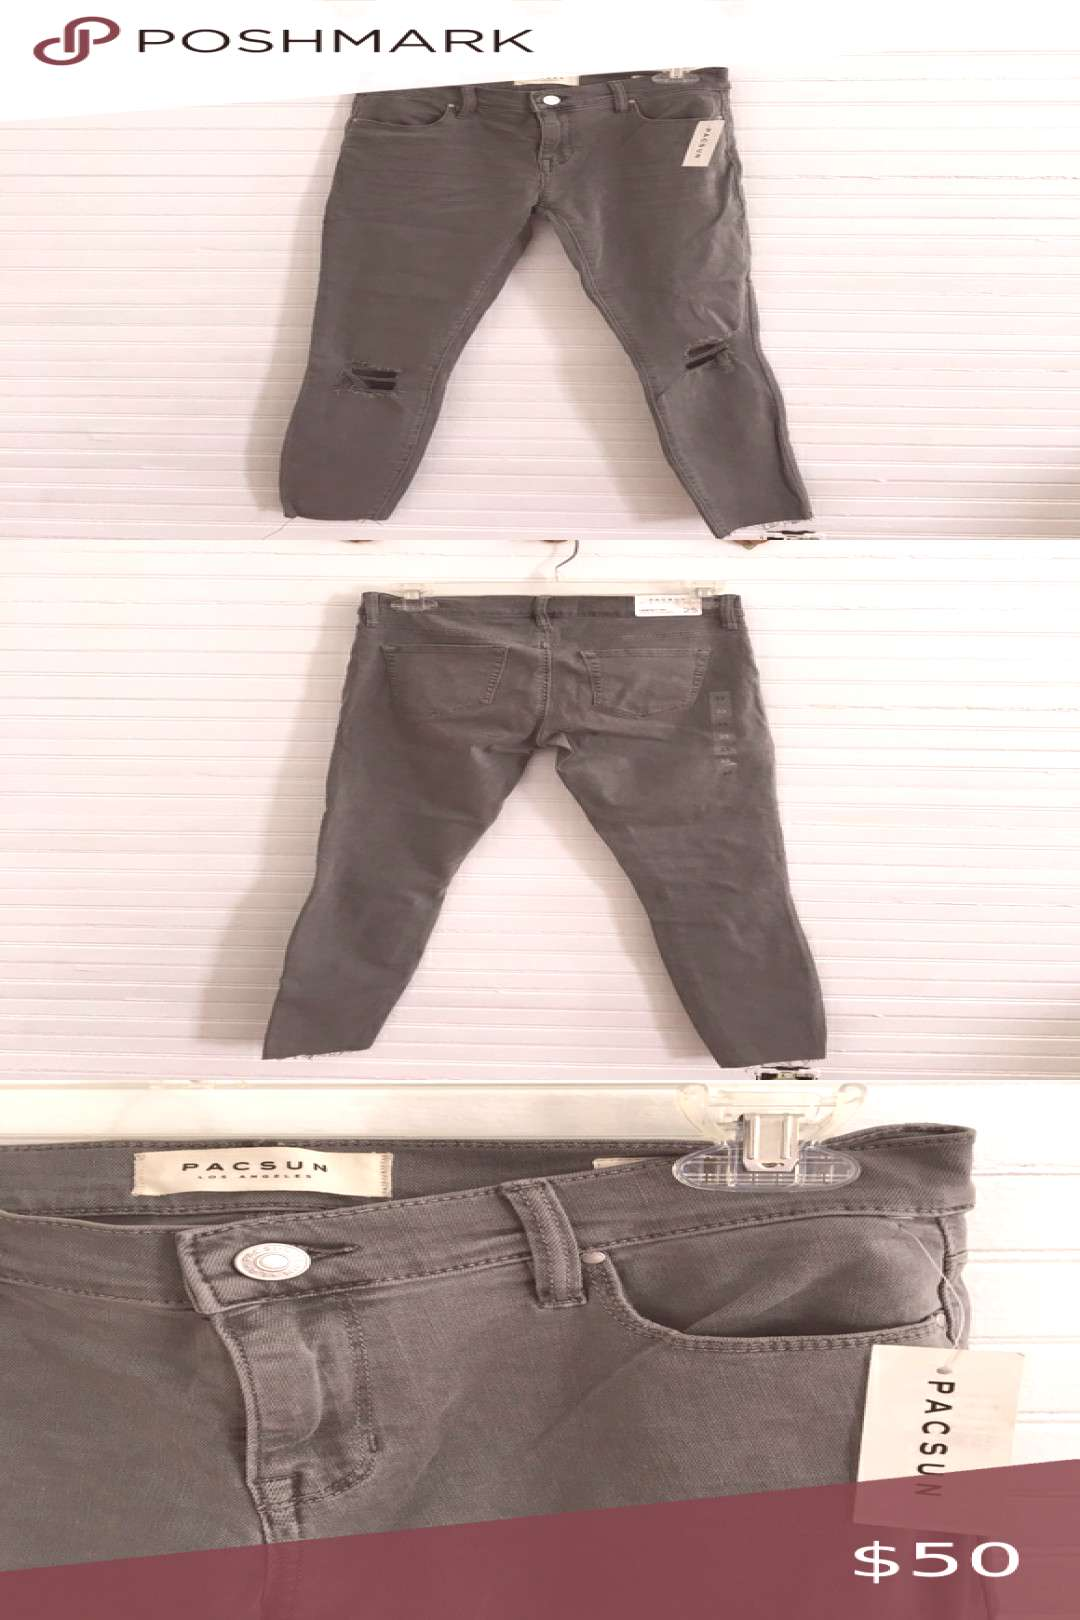 I just added this listing on Poshmark PacSun Perfect Fit Ankle Jegging Gray Skinny Jeans.